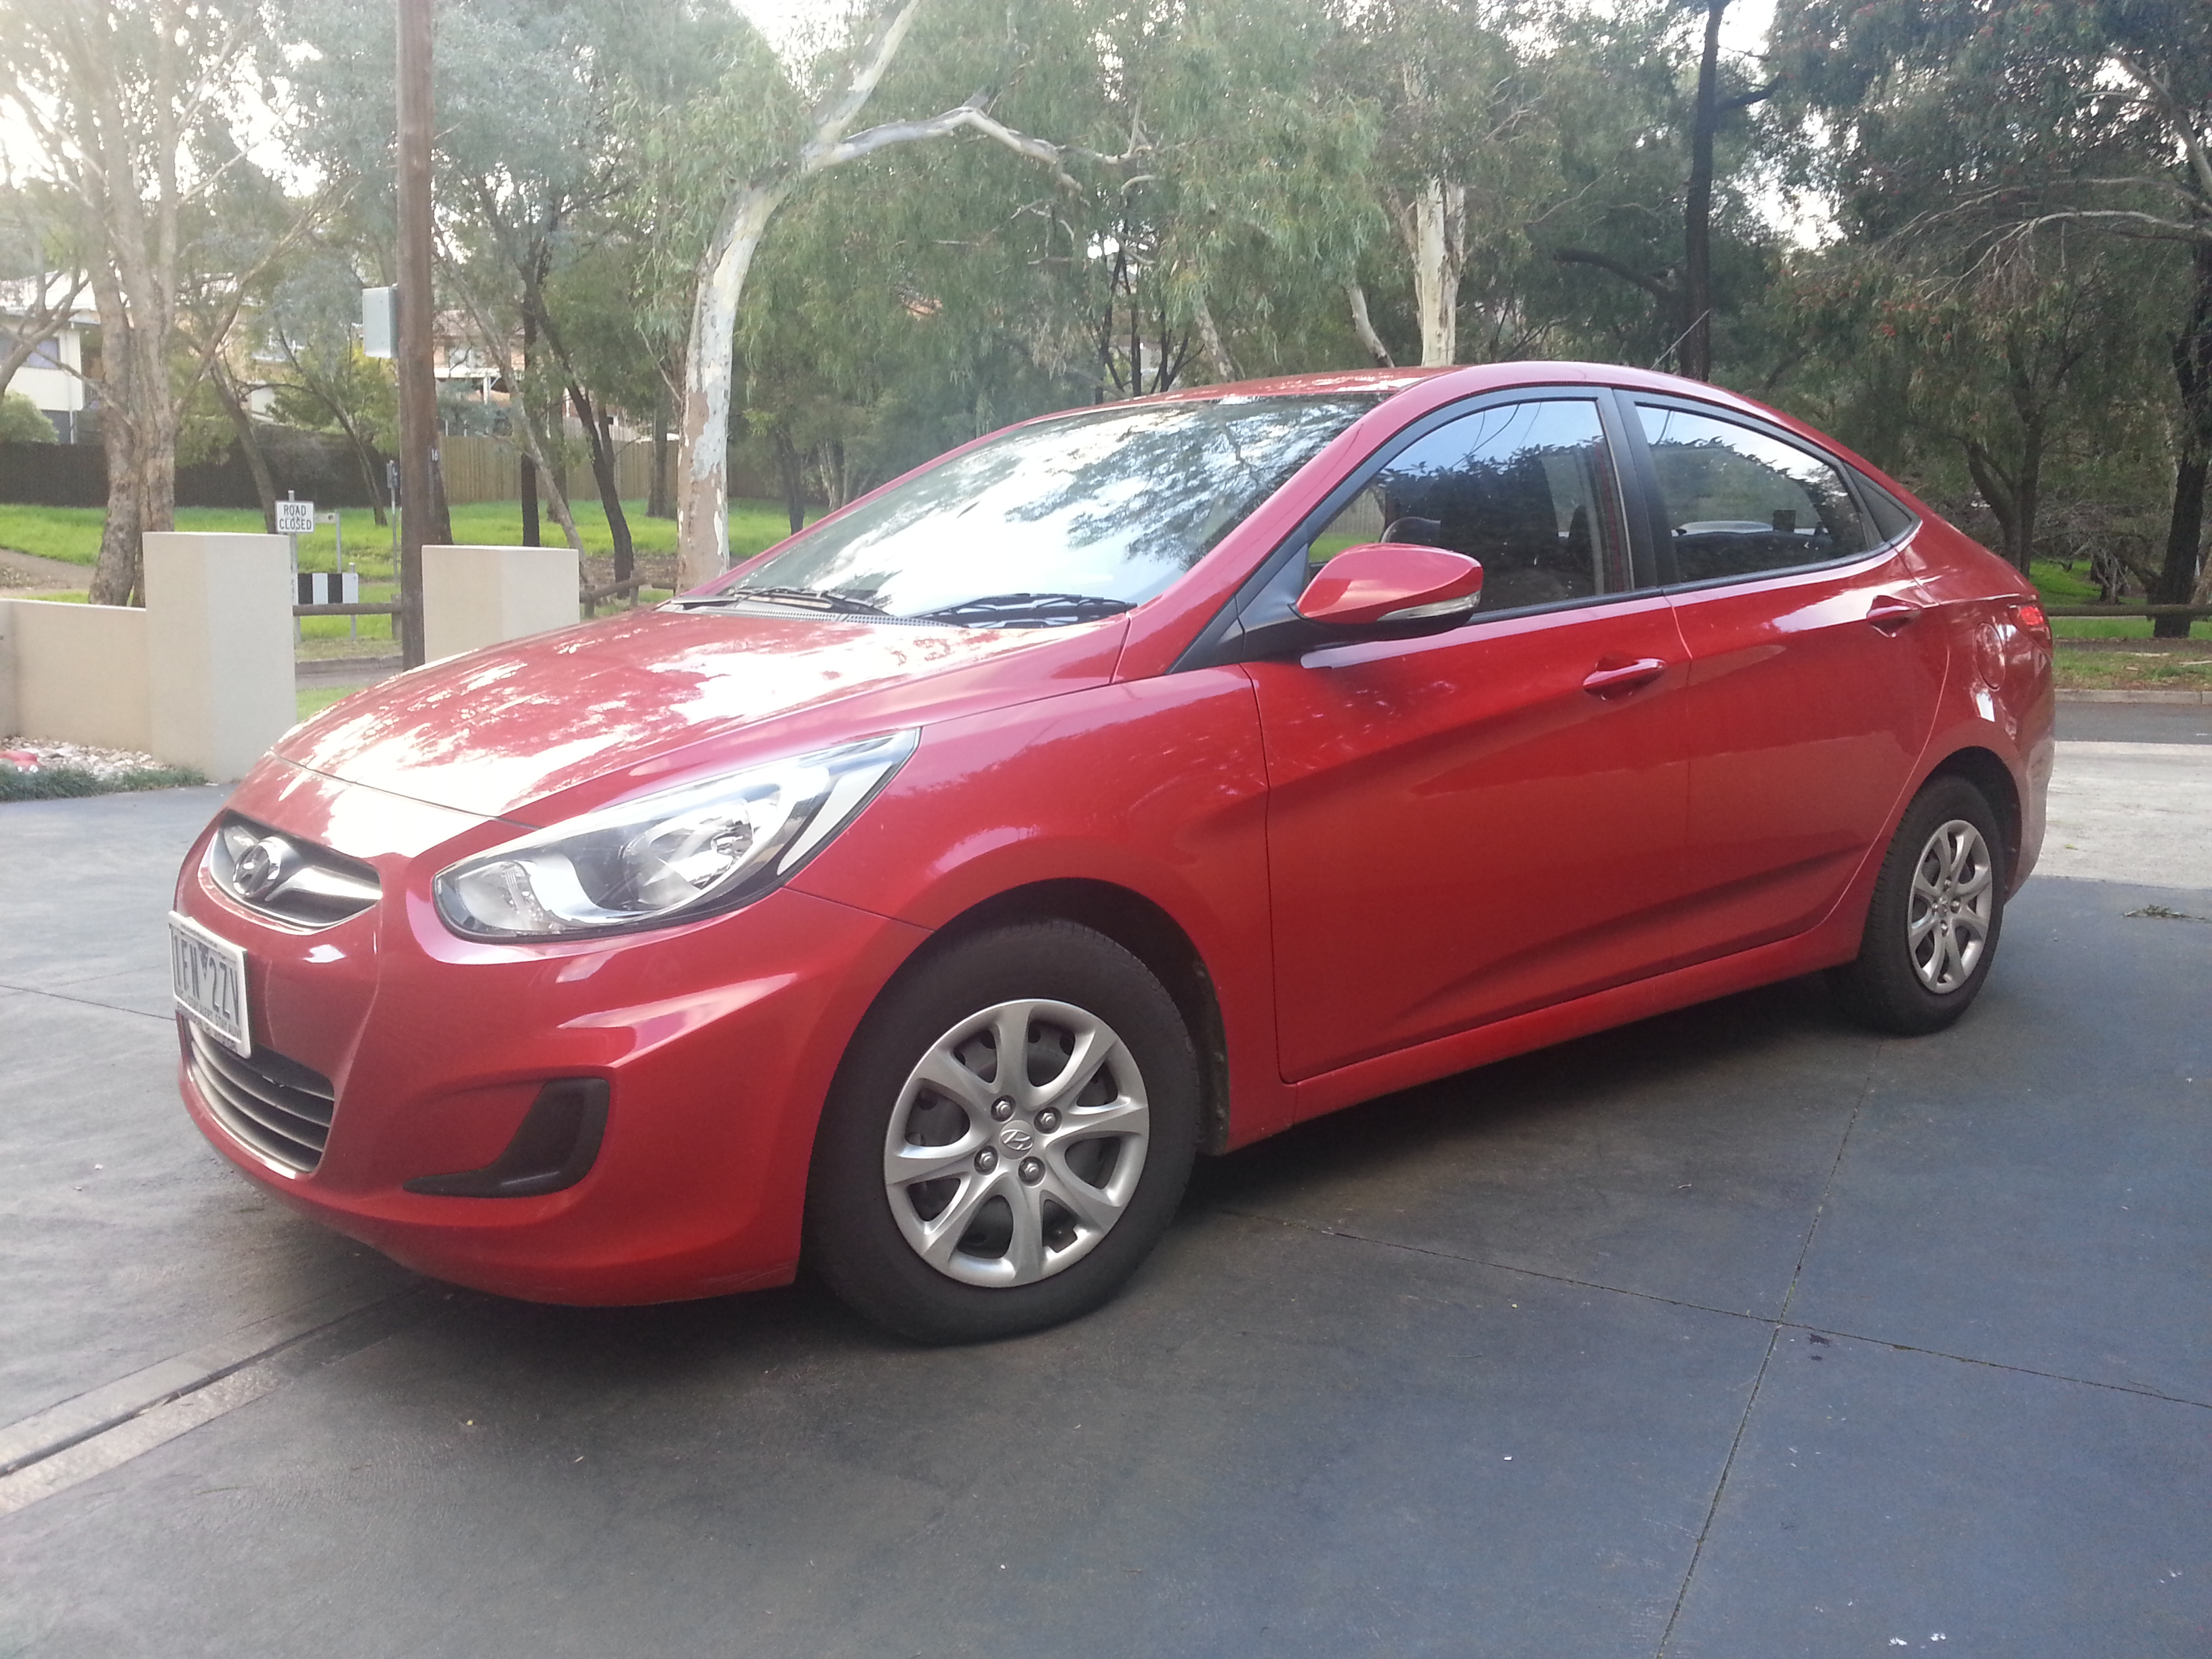 Picture of Iain's 2013 Hyundai Accent